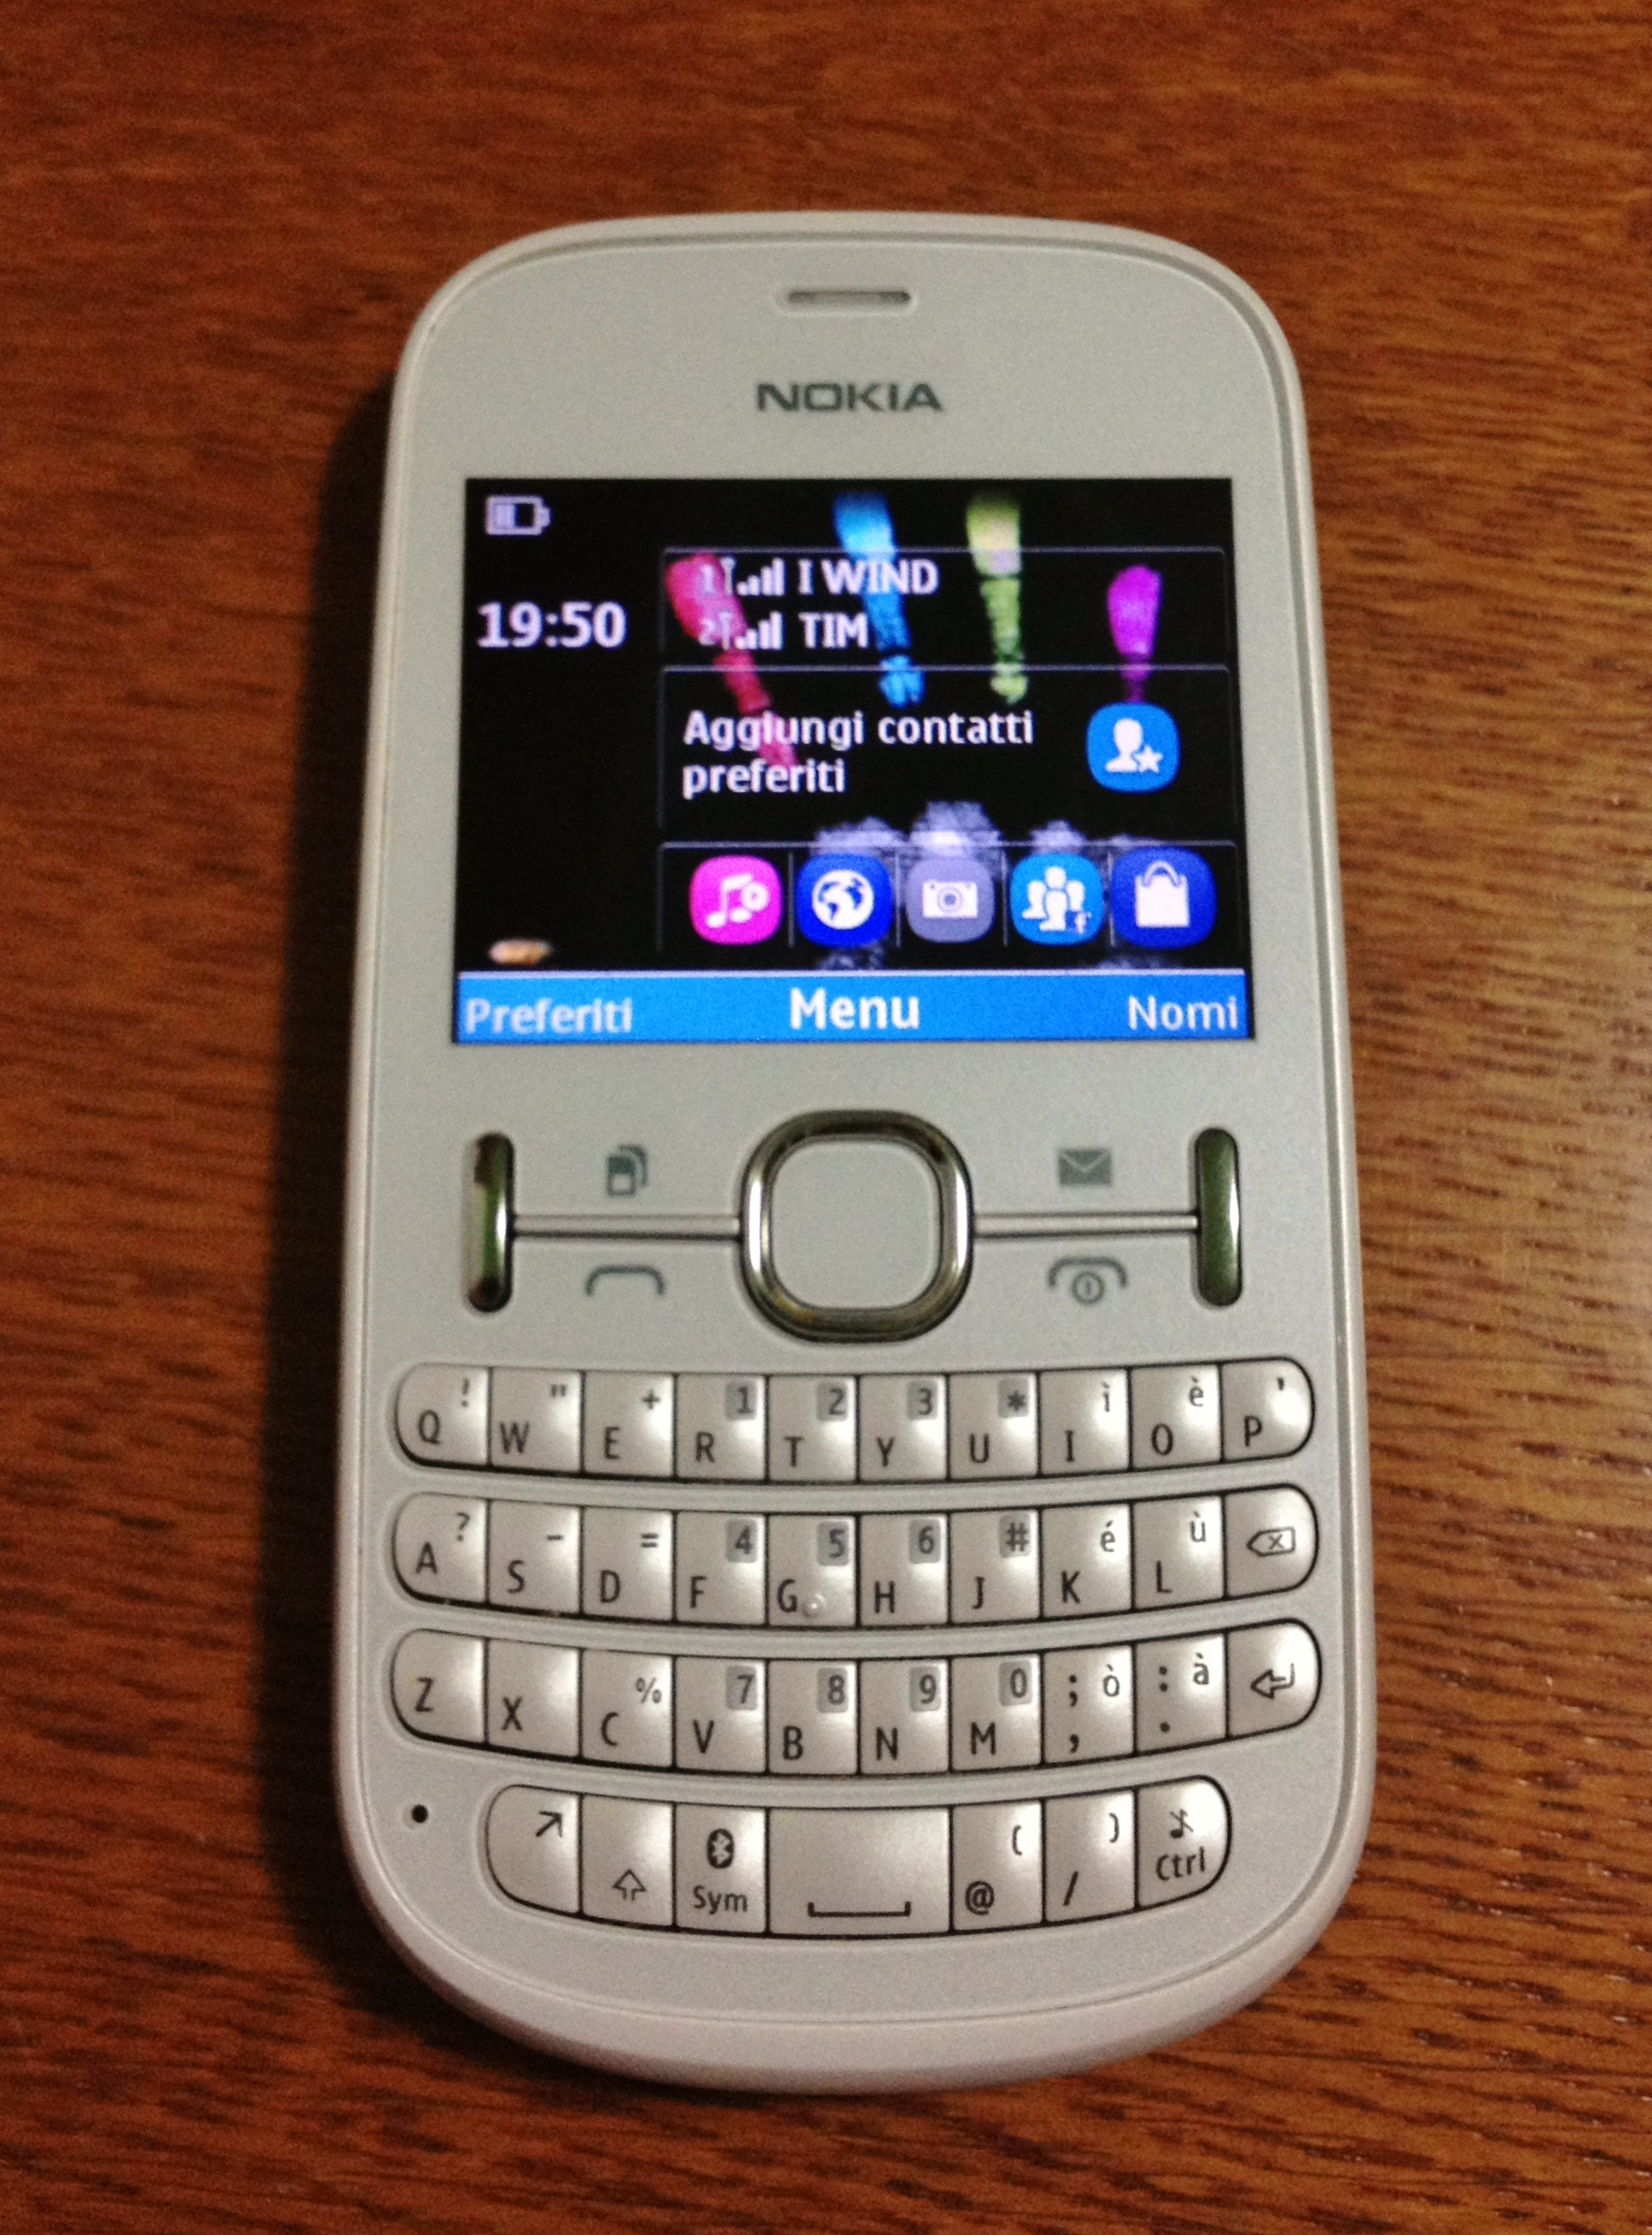 Oct 26, 2011. The nokia asha 200 is a dual sim candybar messaging phone with a full qwerty keyboard, 2. 4-inch color display, bluetooth, 2-megapixel.